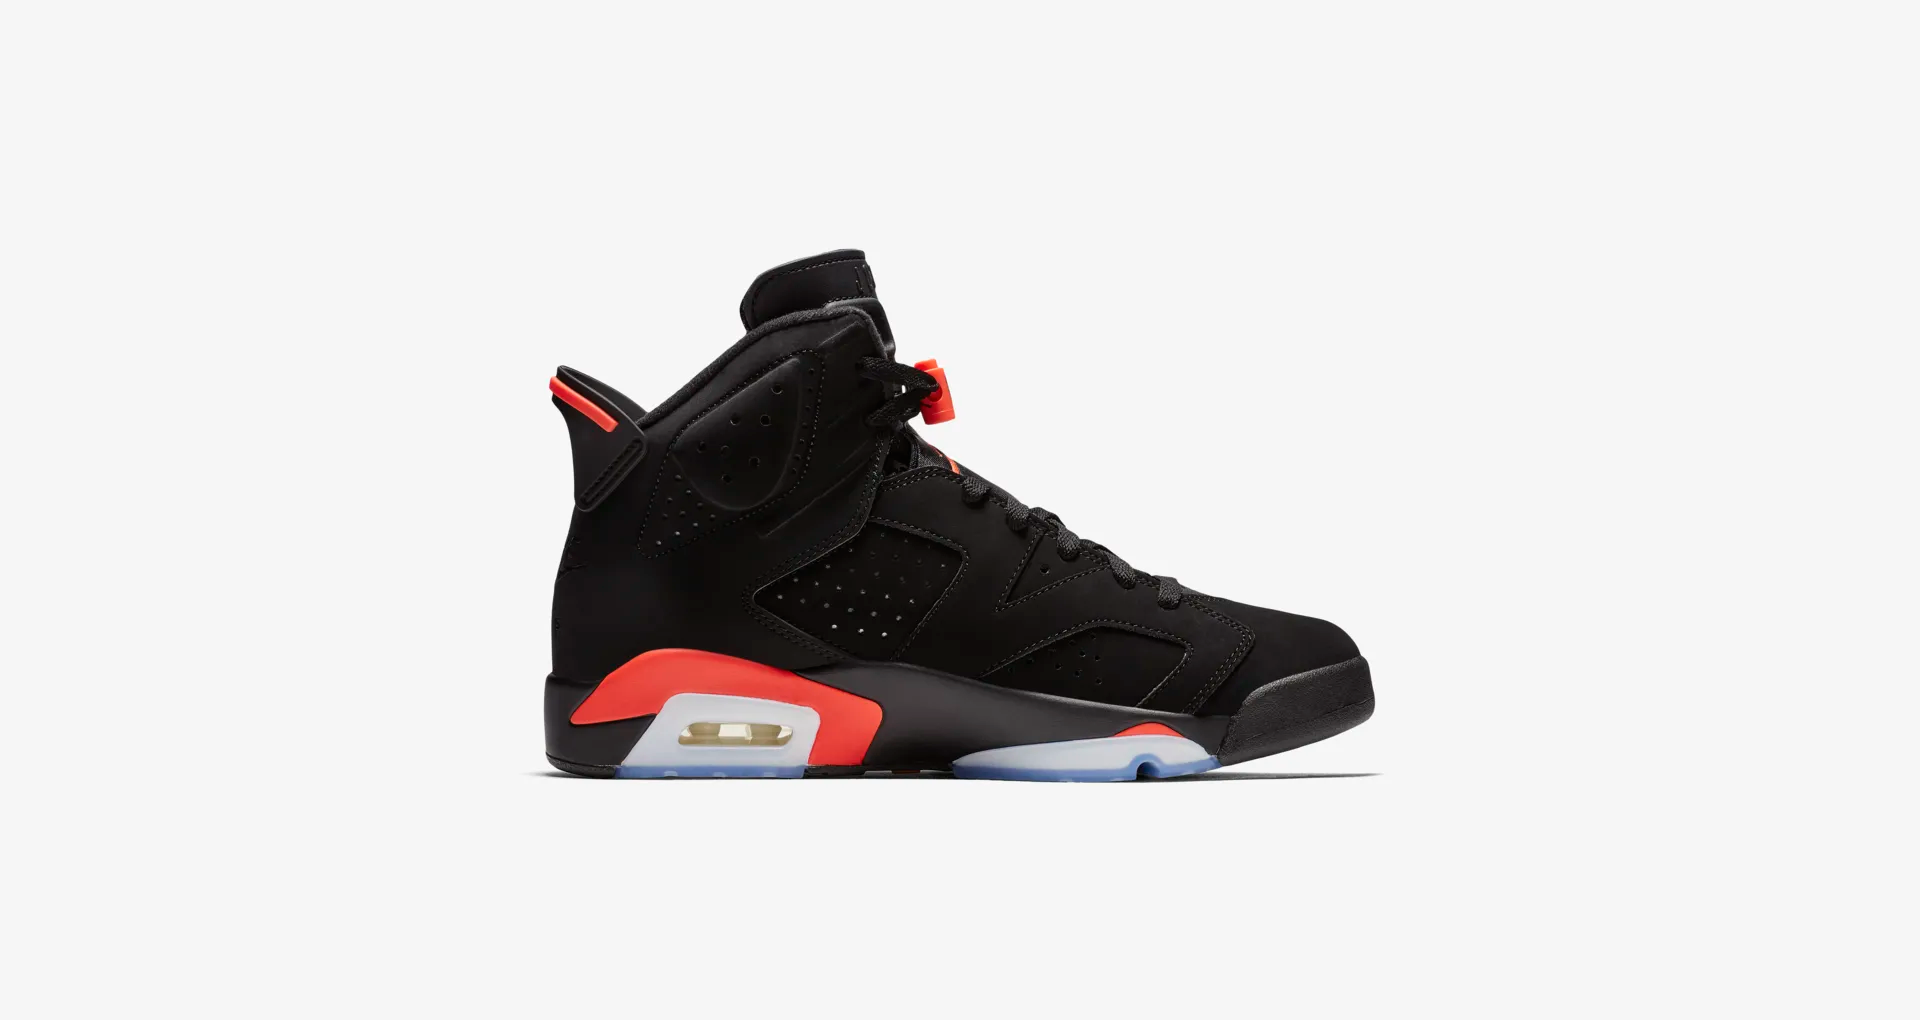 384664 060 Air Jordan 6 Retro Black Infrared OG 4